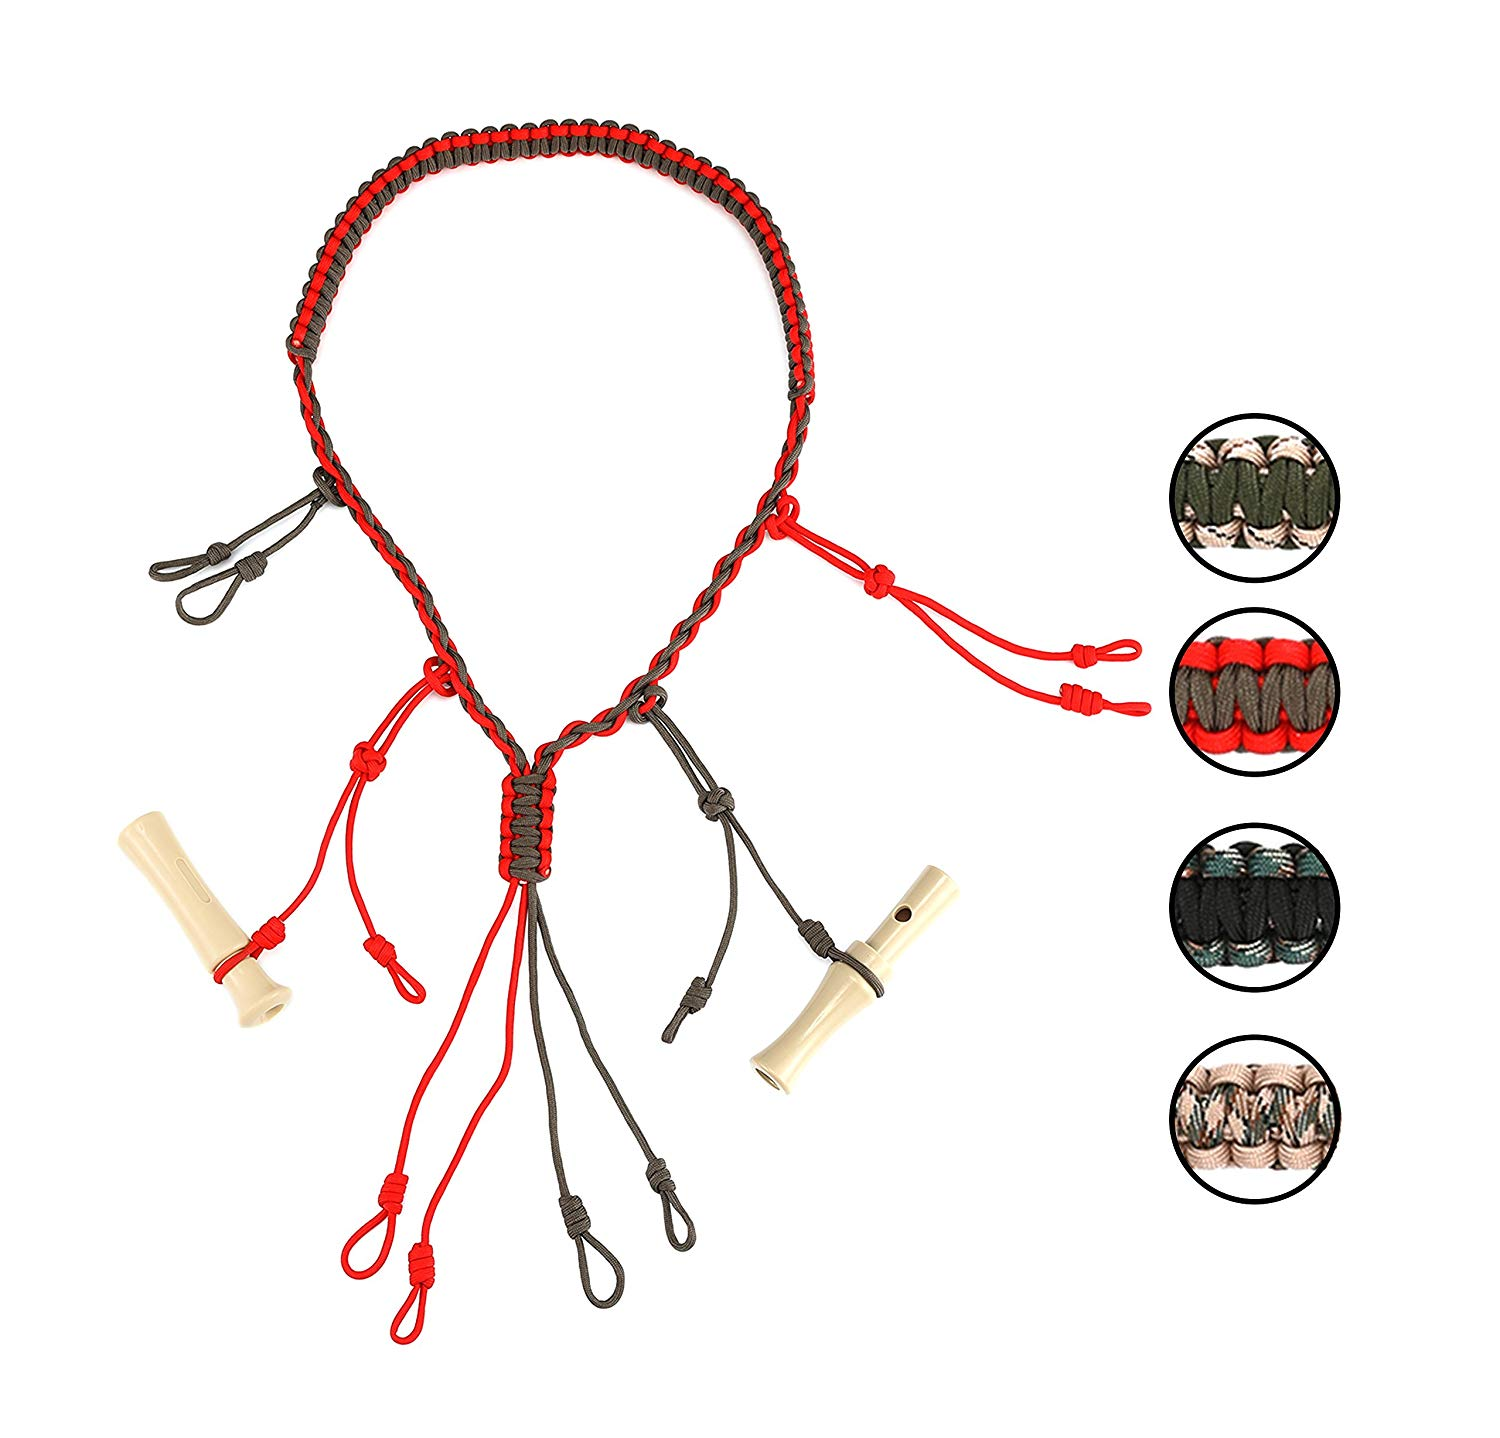 GearOZ Hunting Game Calls Lanyard Paracord With Adjustable Hoops For Holding Any Size Of Duck Calls,Goose Calls, Pheasant Calls,Waterfowl Calls,Predator Calls Securely